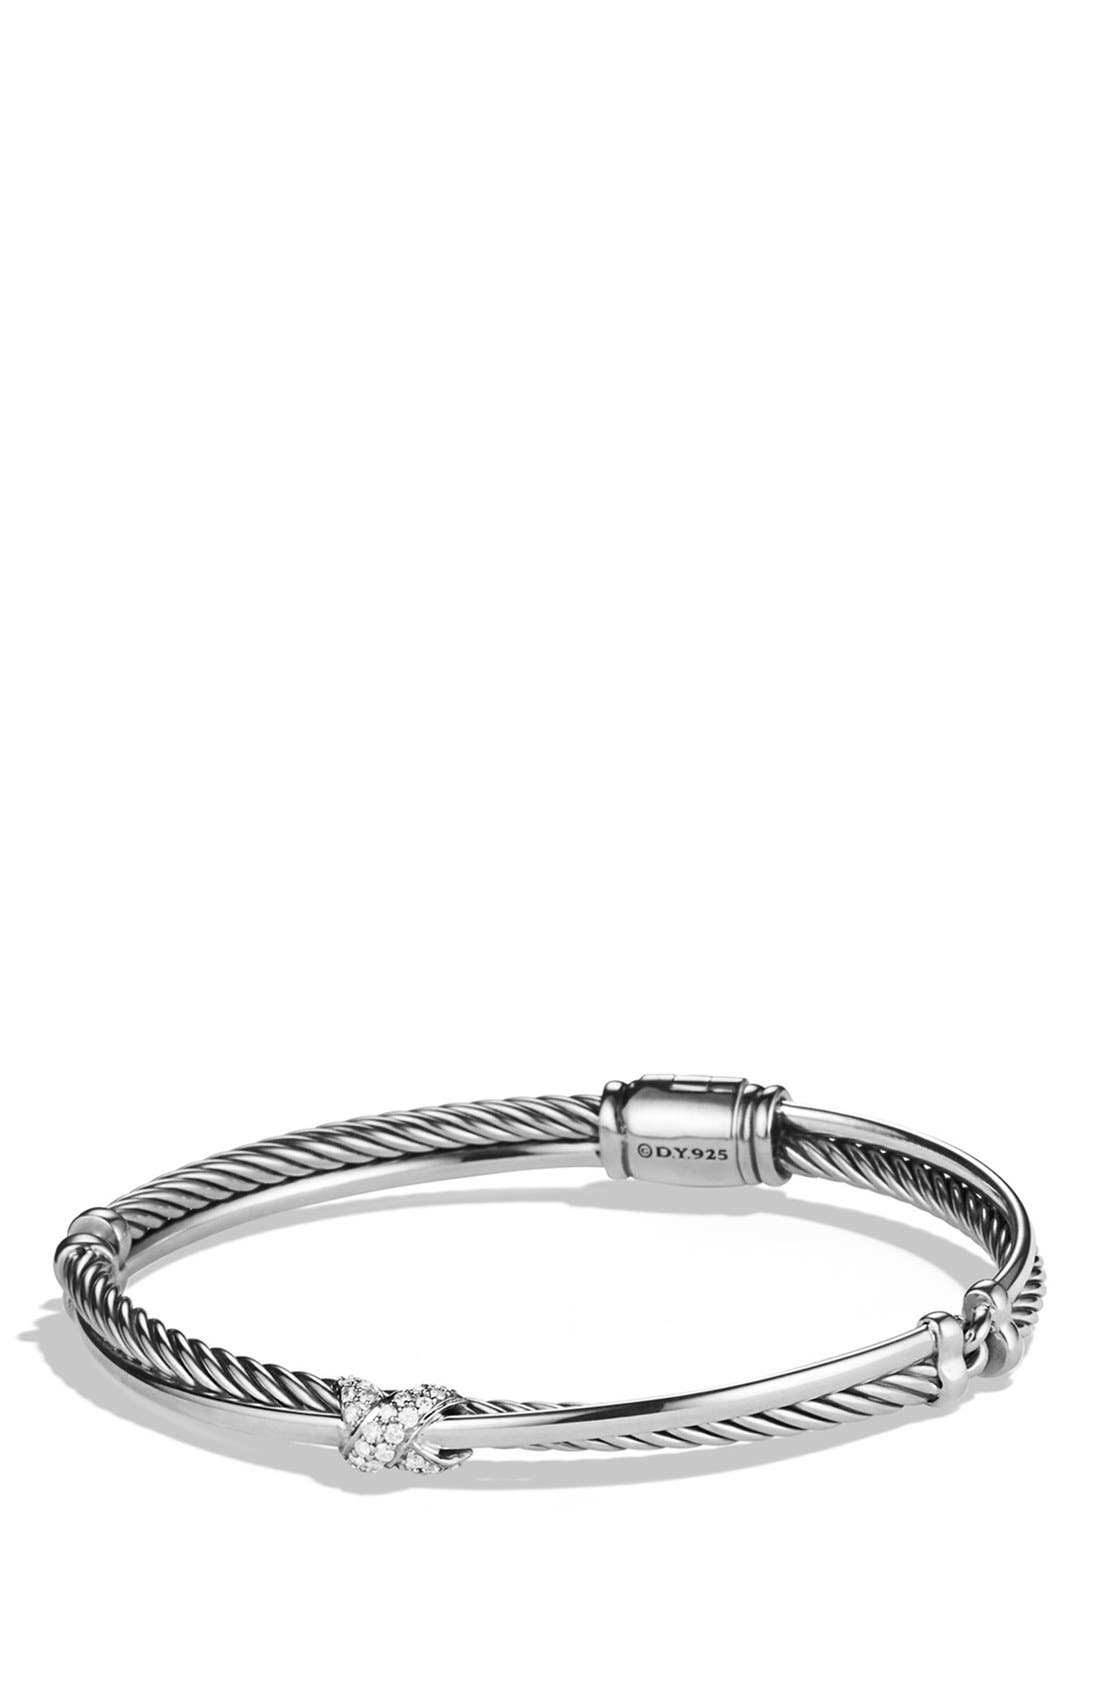 DAVID YURMAN Petite X Crossover Bracelet with Diamonds